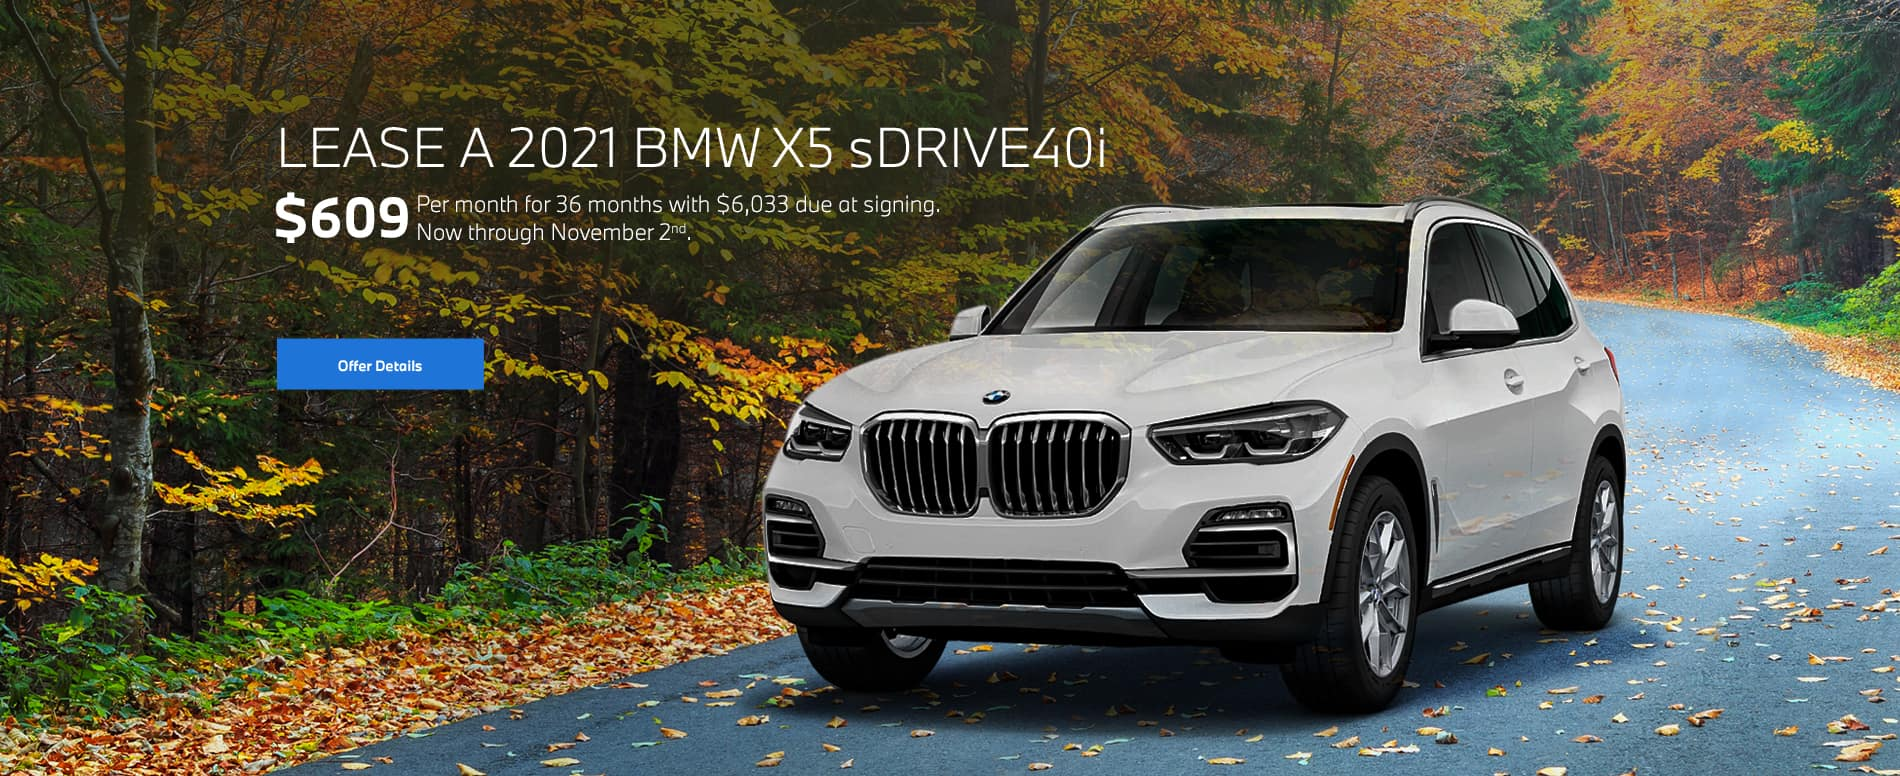 X5 sDrive40i - Lease a 2021 BMW X5 sDrive40i for $609/month for 36 months ($6,033 due at signing now through November 2nd).